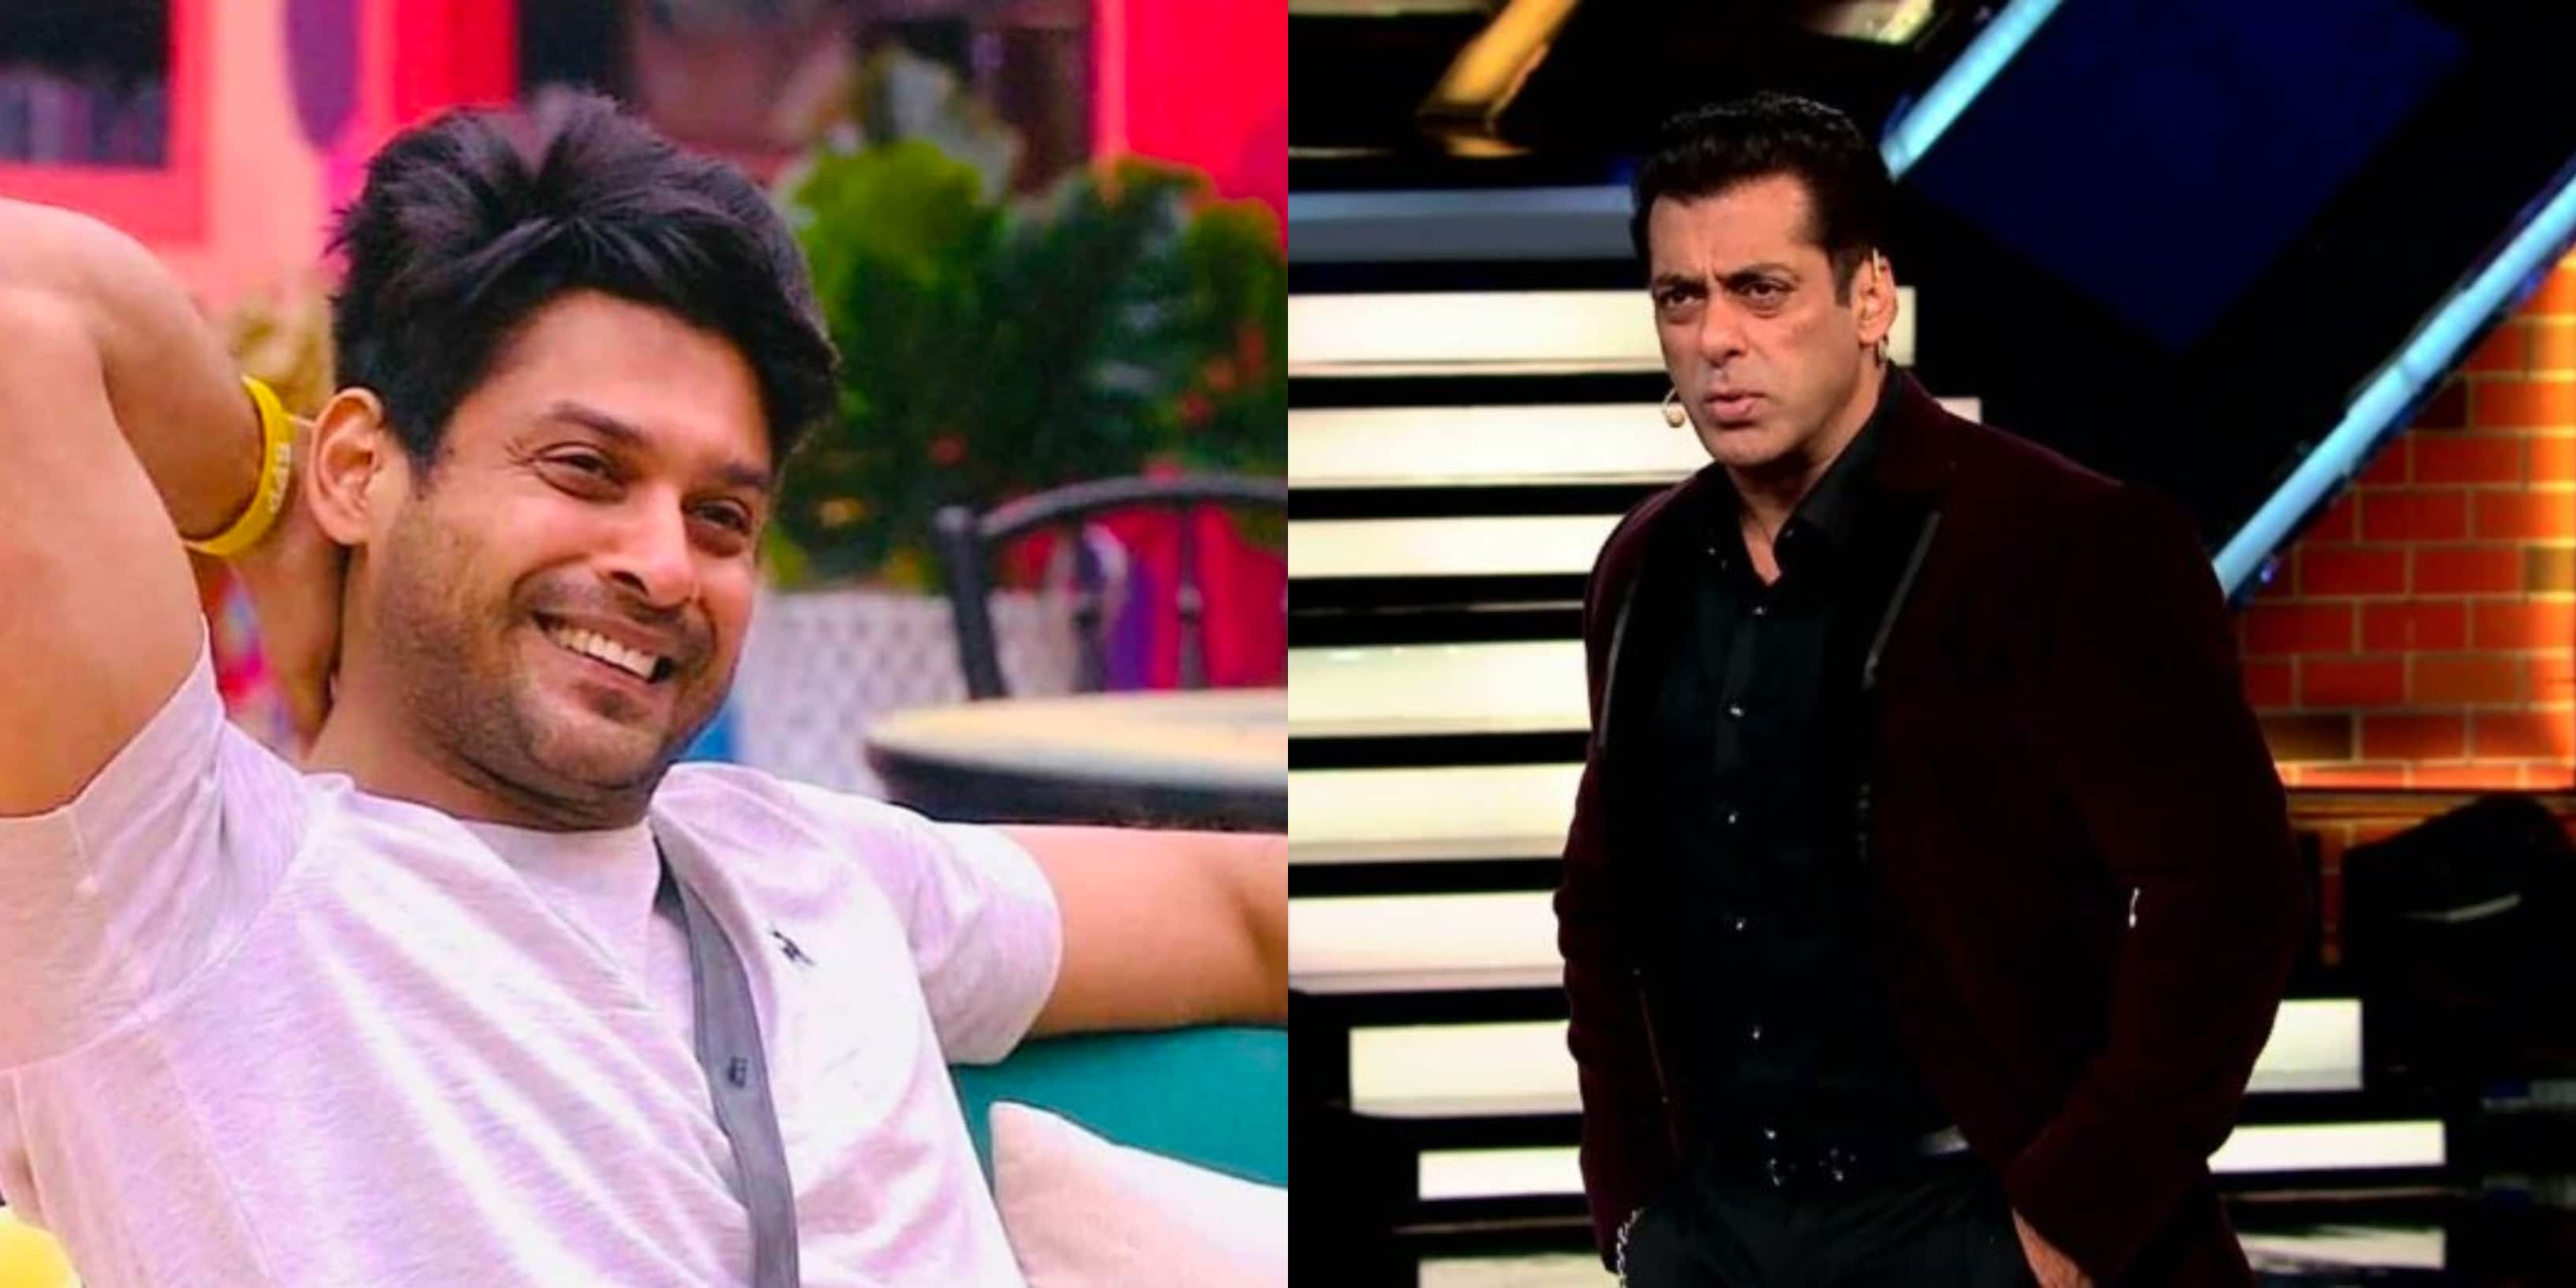 Bigg Boss 13: Salman Khan Lashes Out At Siddharth Shukla, Clip Removed From Episode Leaving Fans Angry